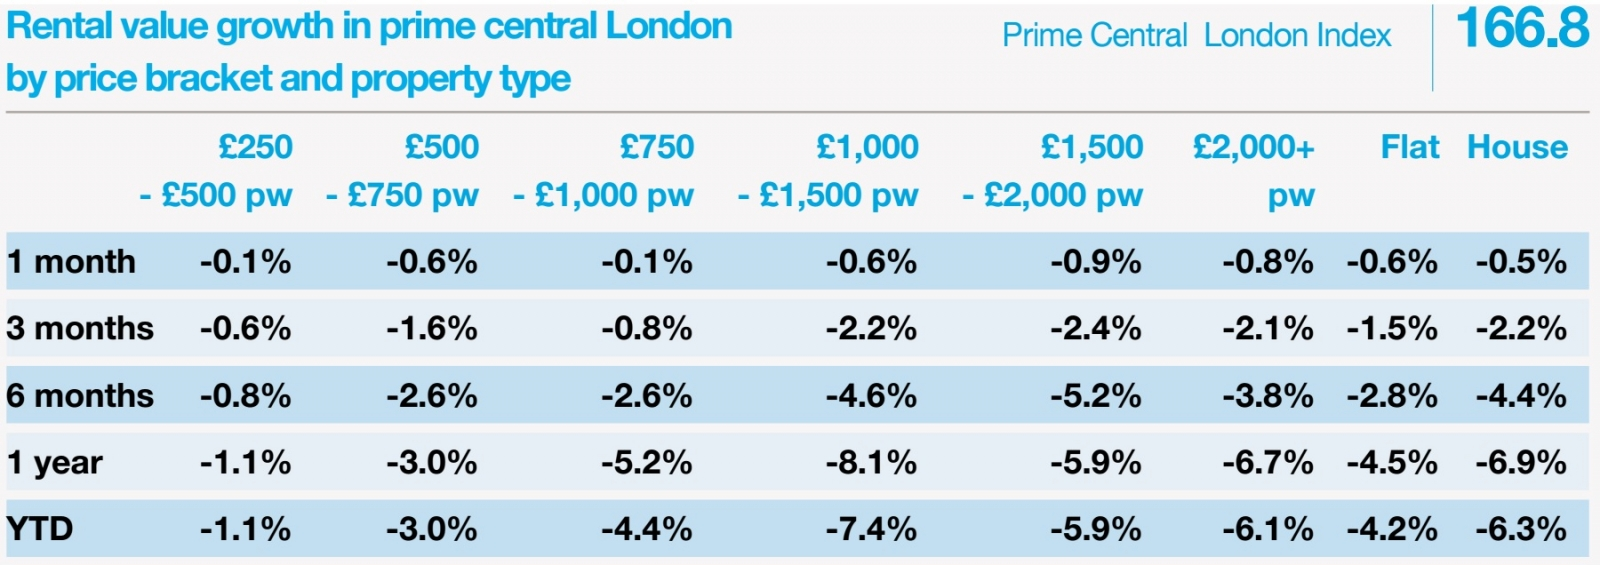 Knight Frank prime central London property prices